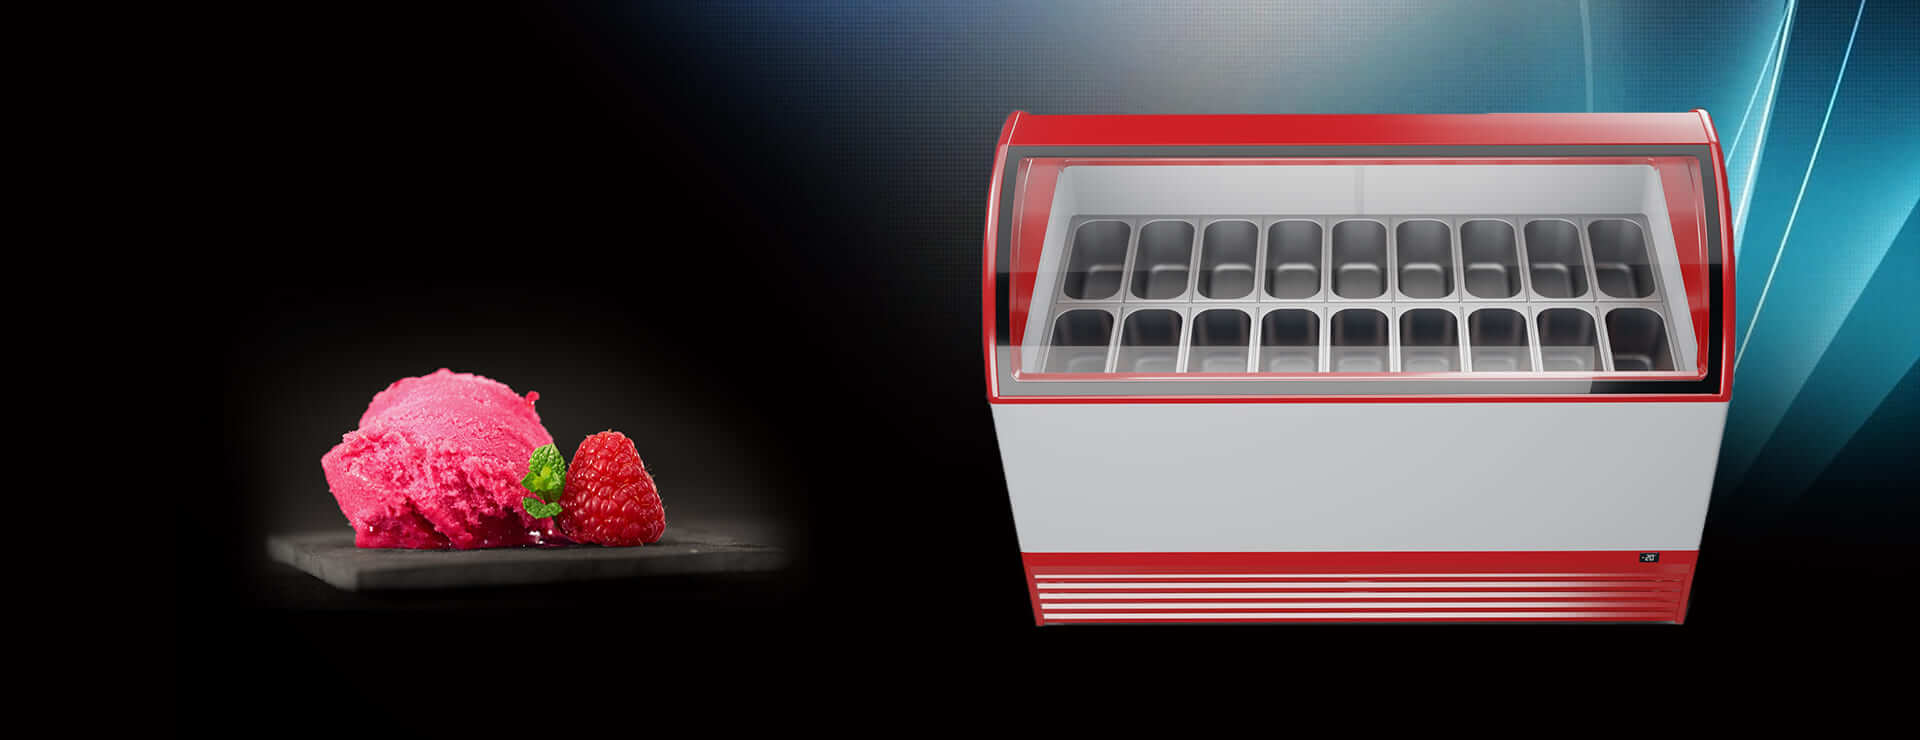 Scooping freezer M800Q for 18 gelato flavours TM JUKA